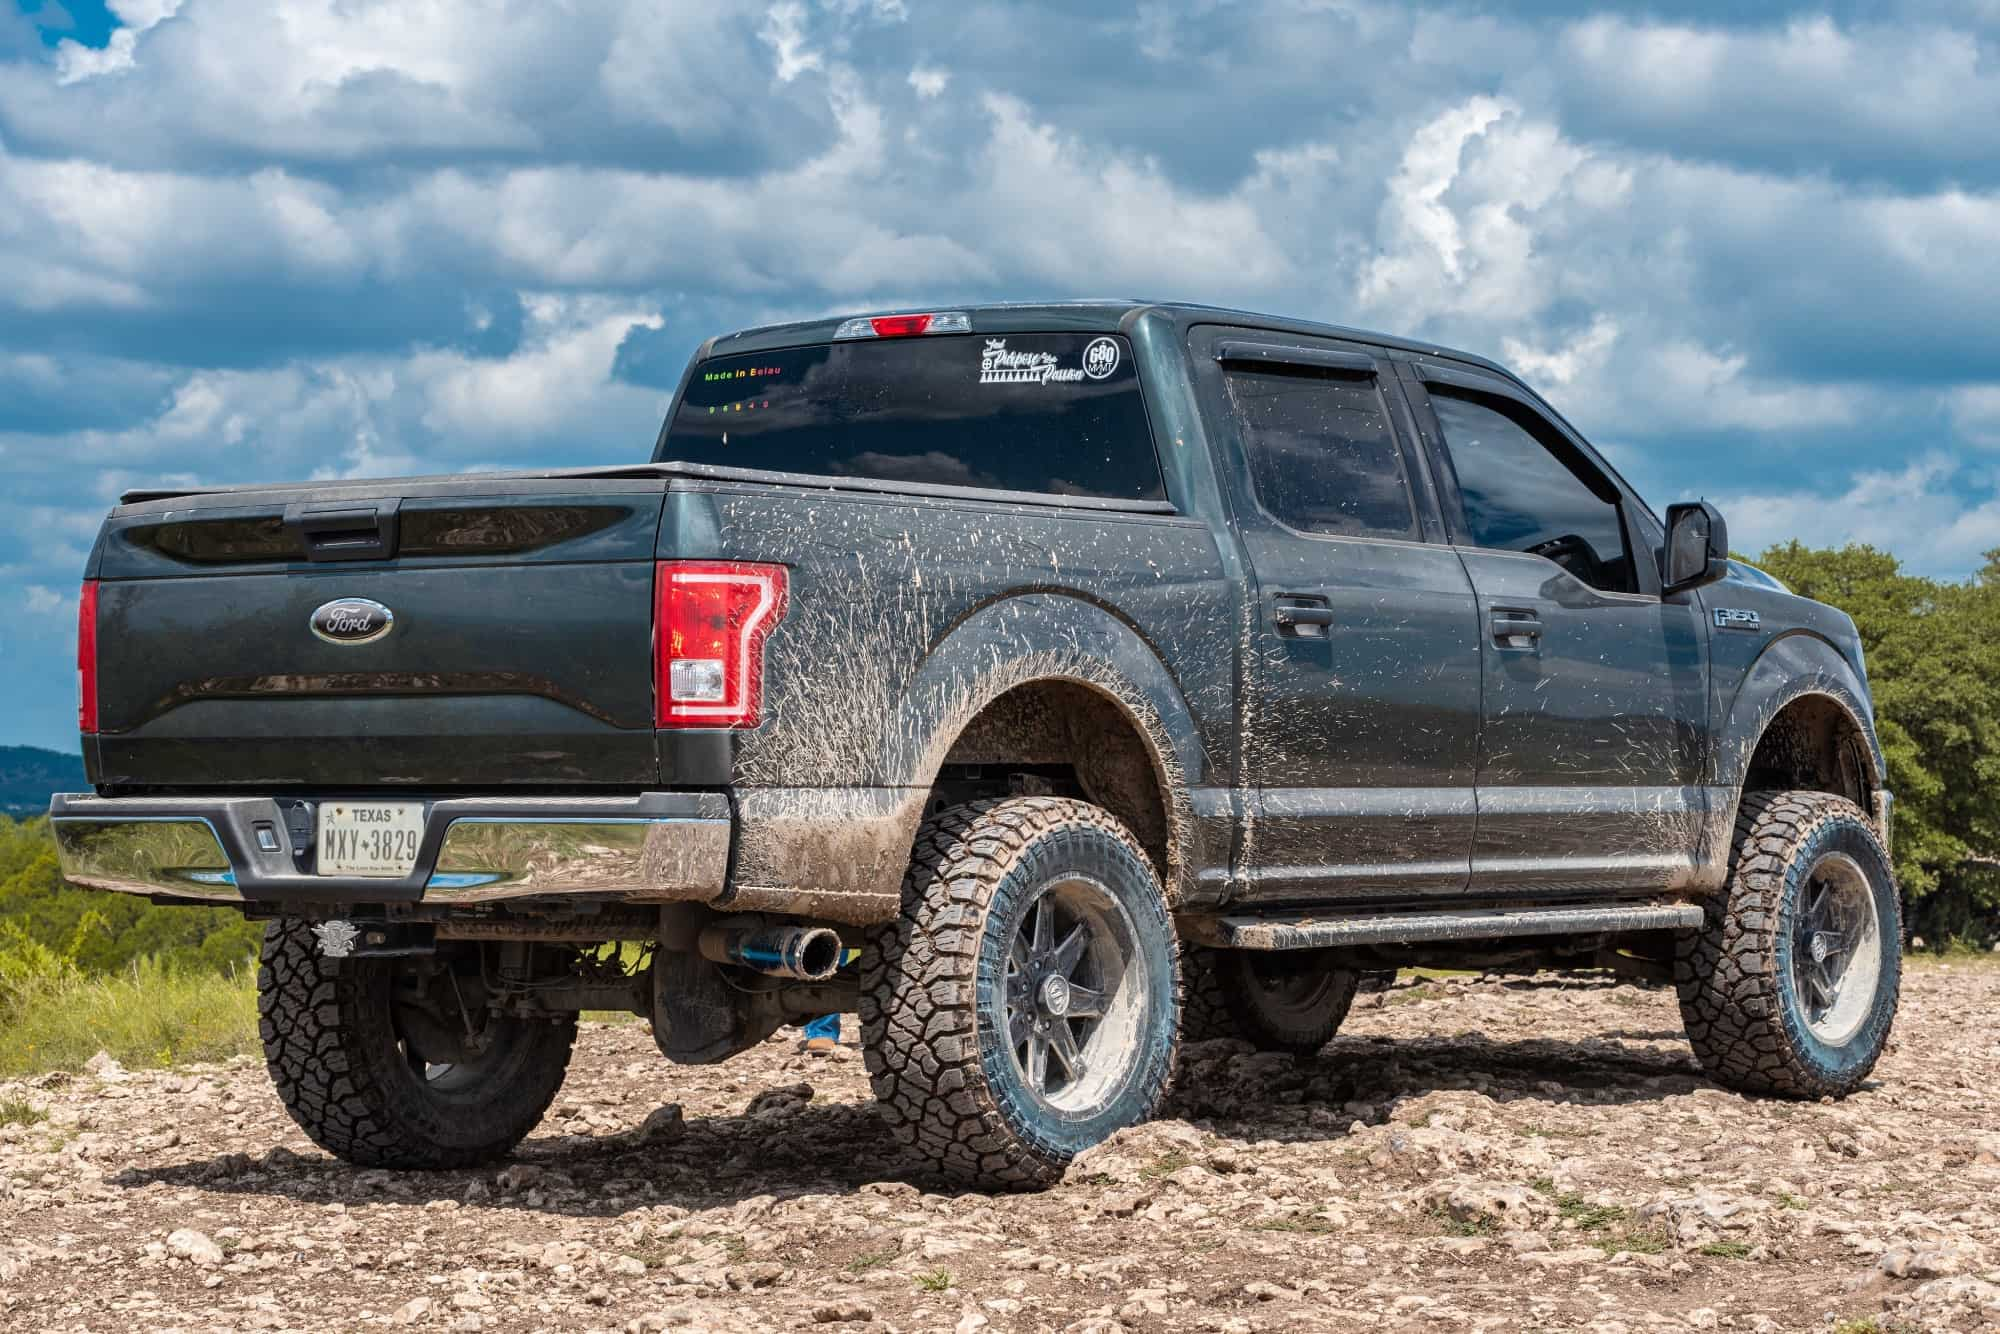 What Are The Best Tires For Off-Roading?